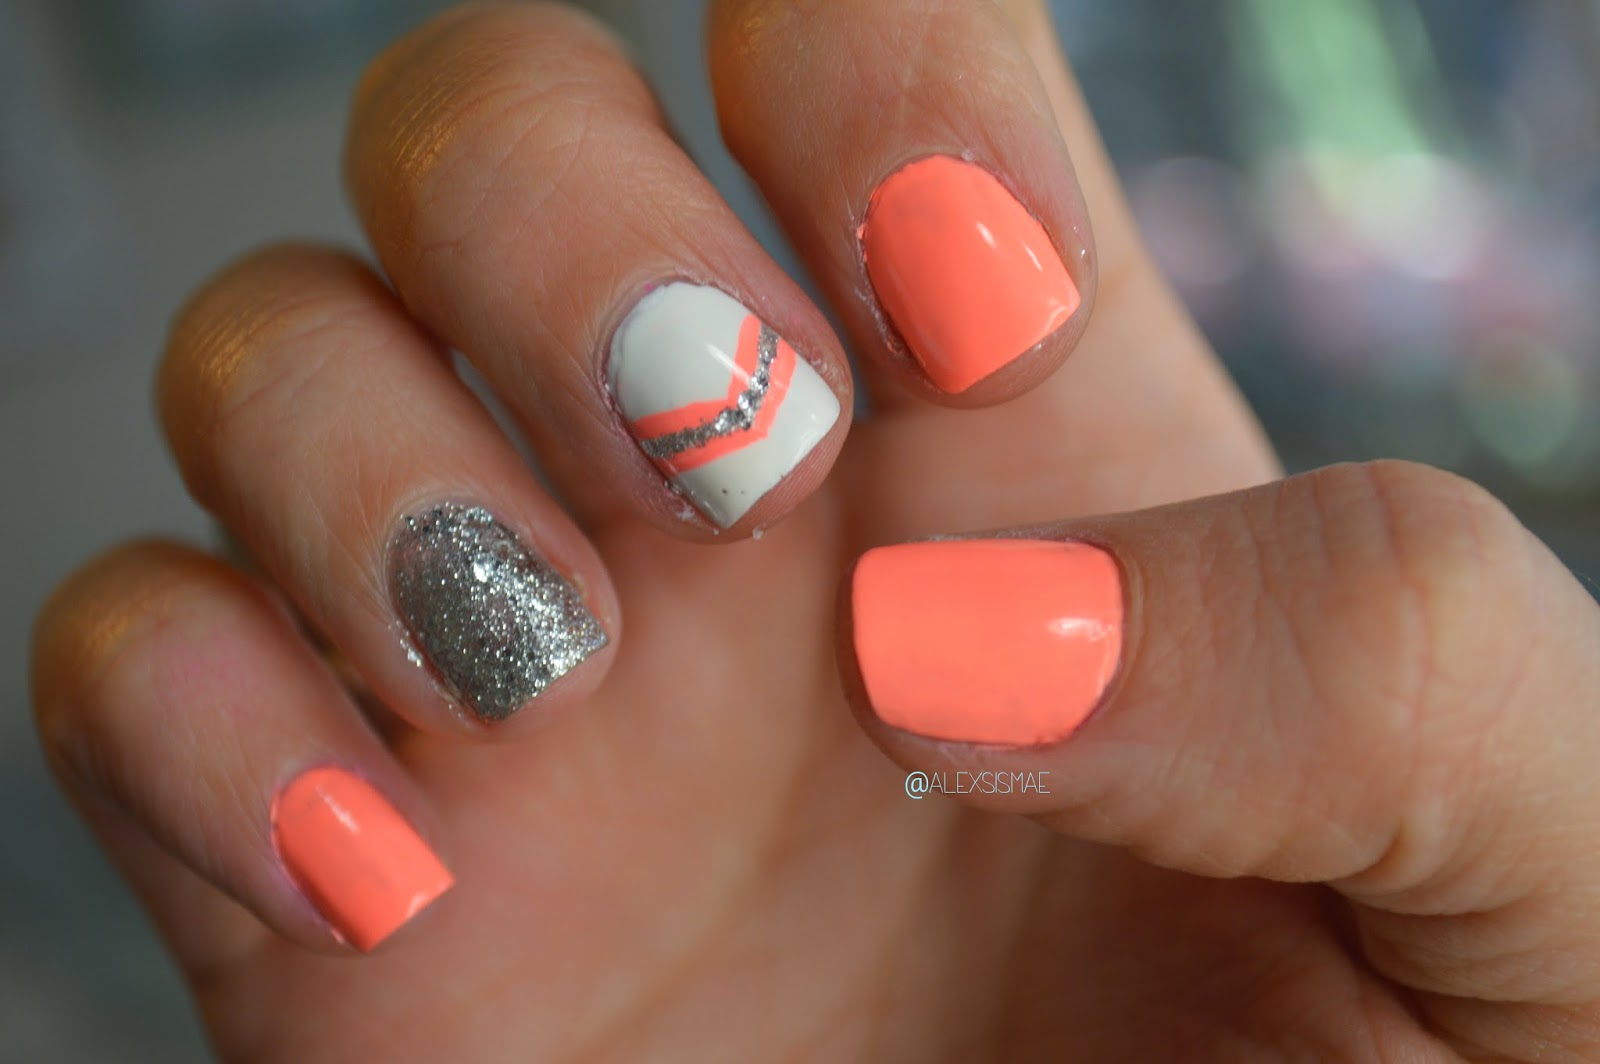 Spring nail designs with glitter : What polish colors will you be breaking out for spring